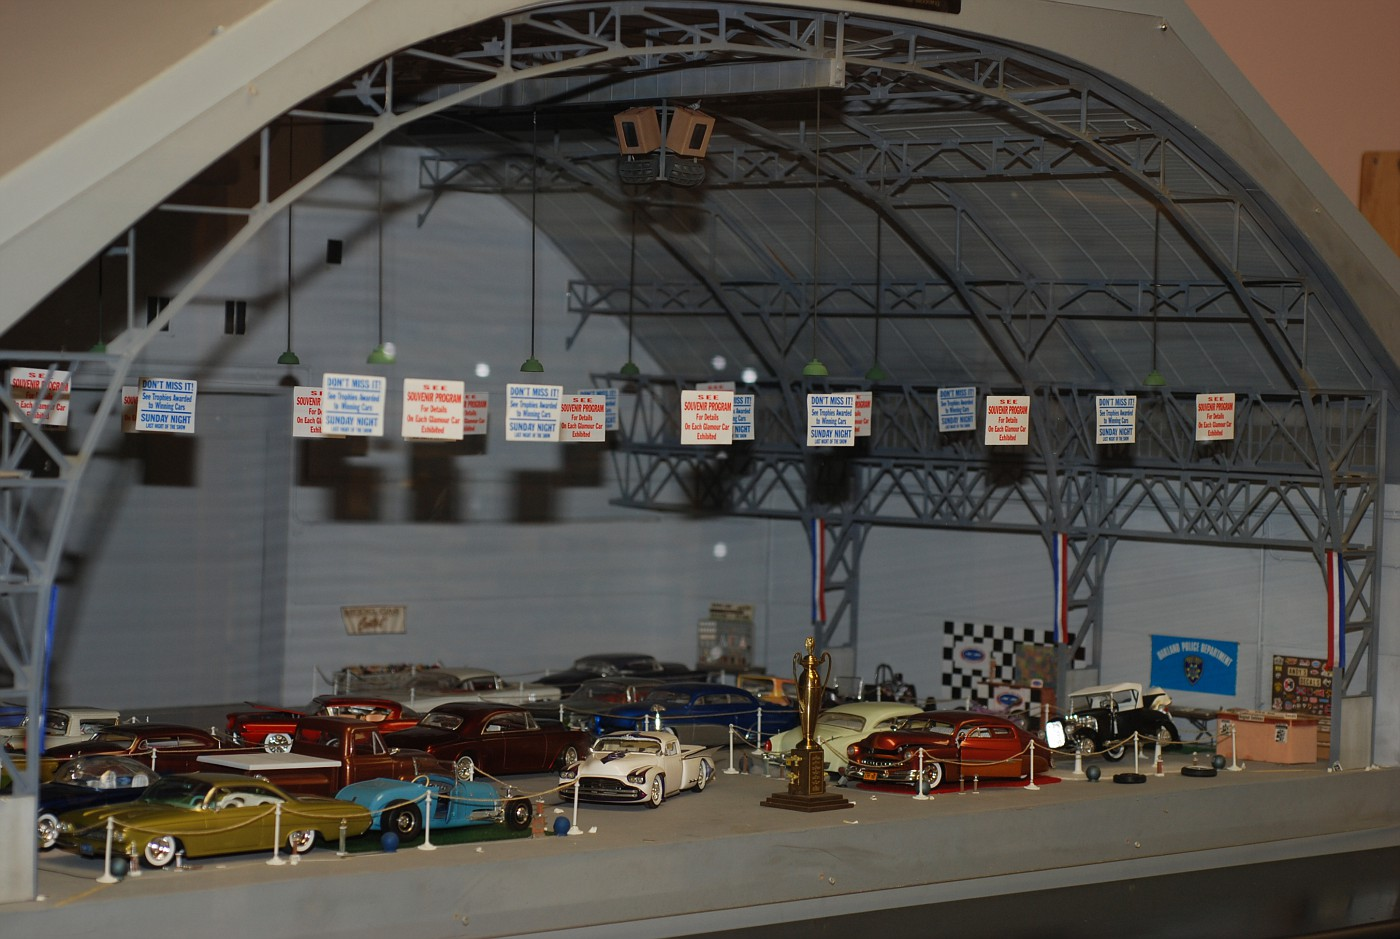 The Oakland Roadster Show Diorama...the building structure was built by Scale Auto columnist Ken Hamilton